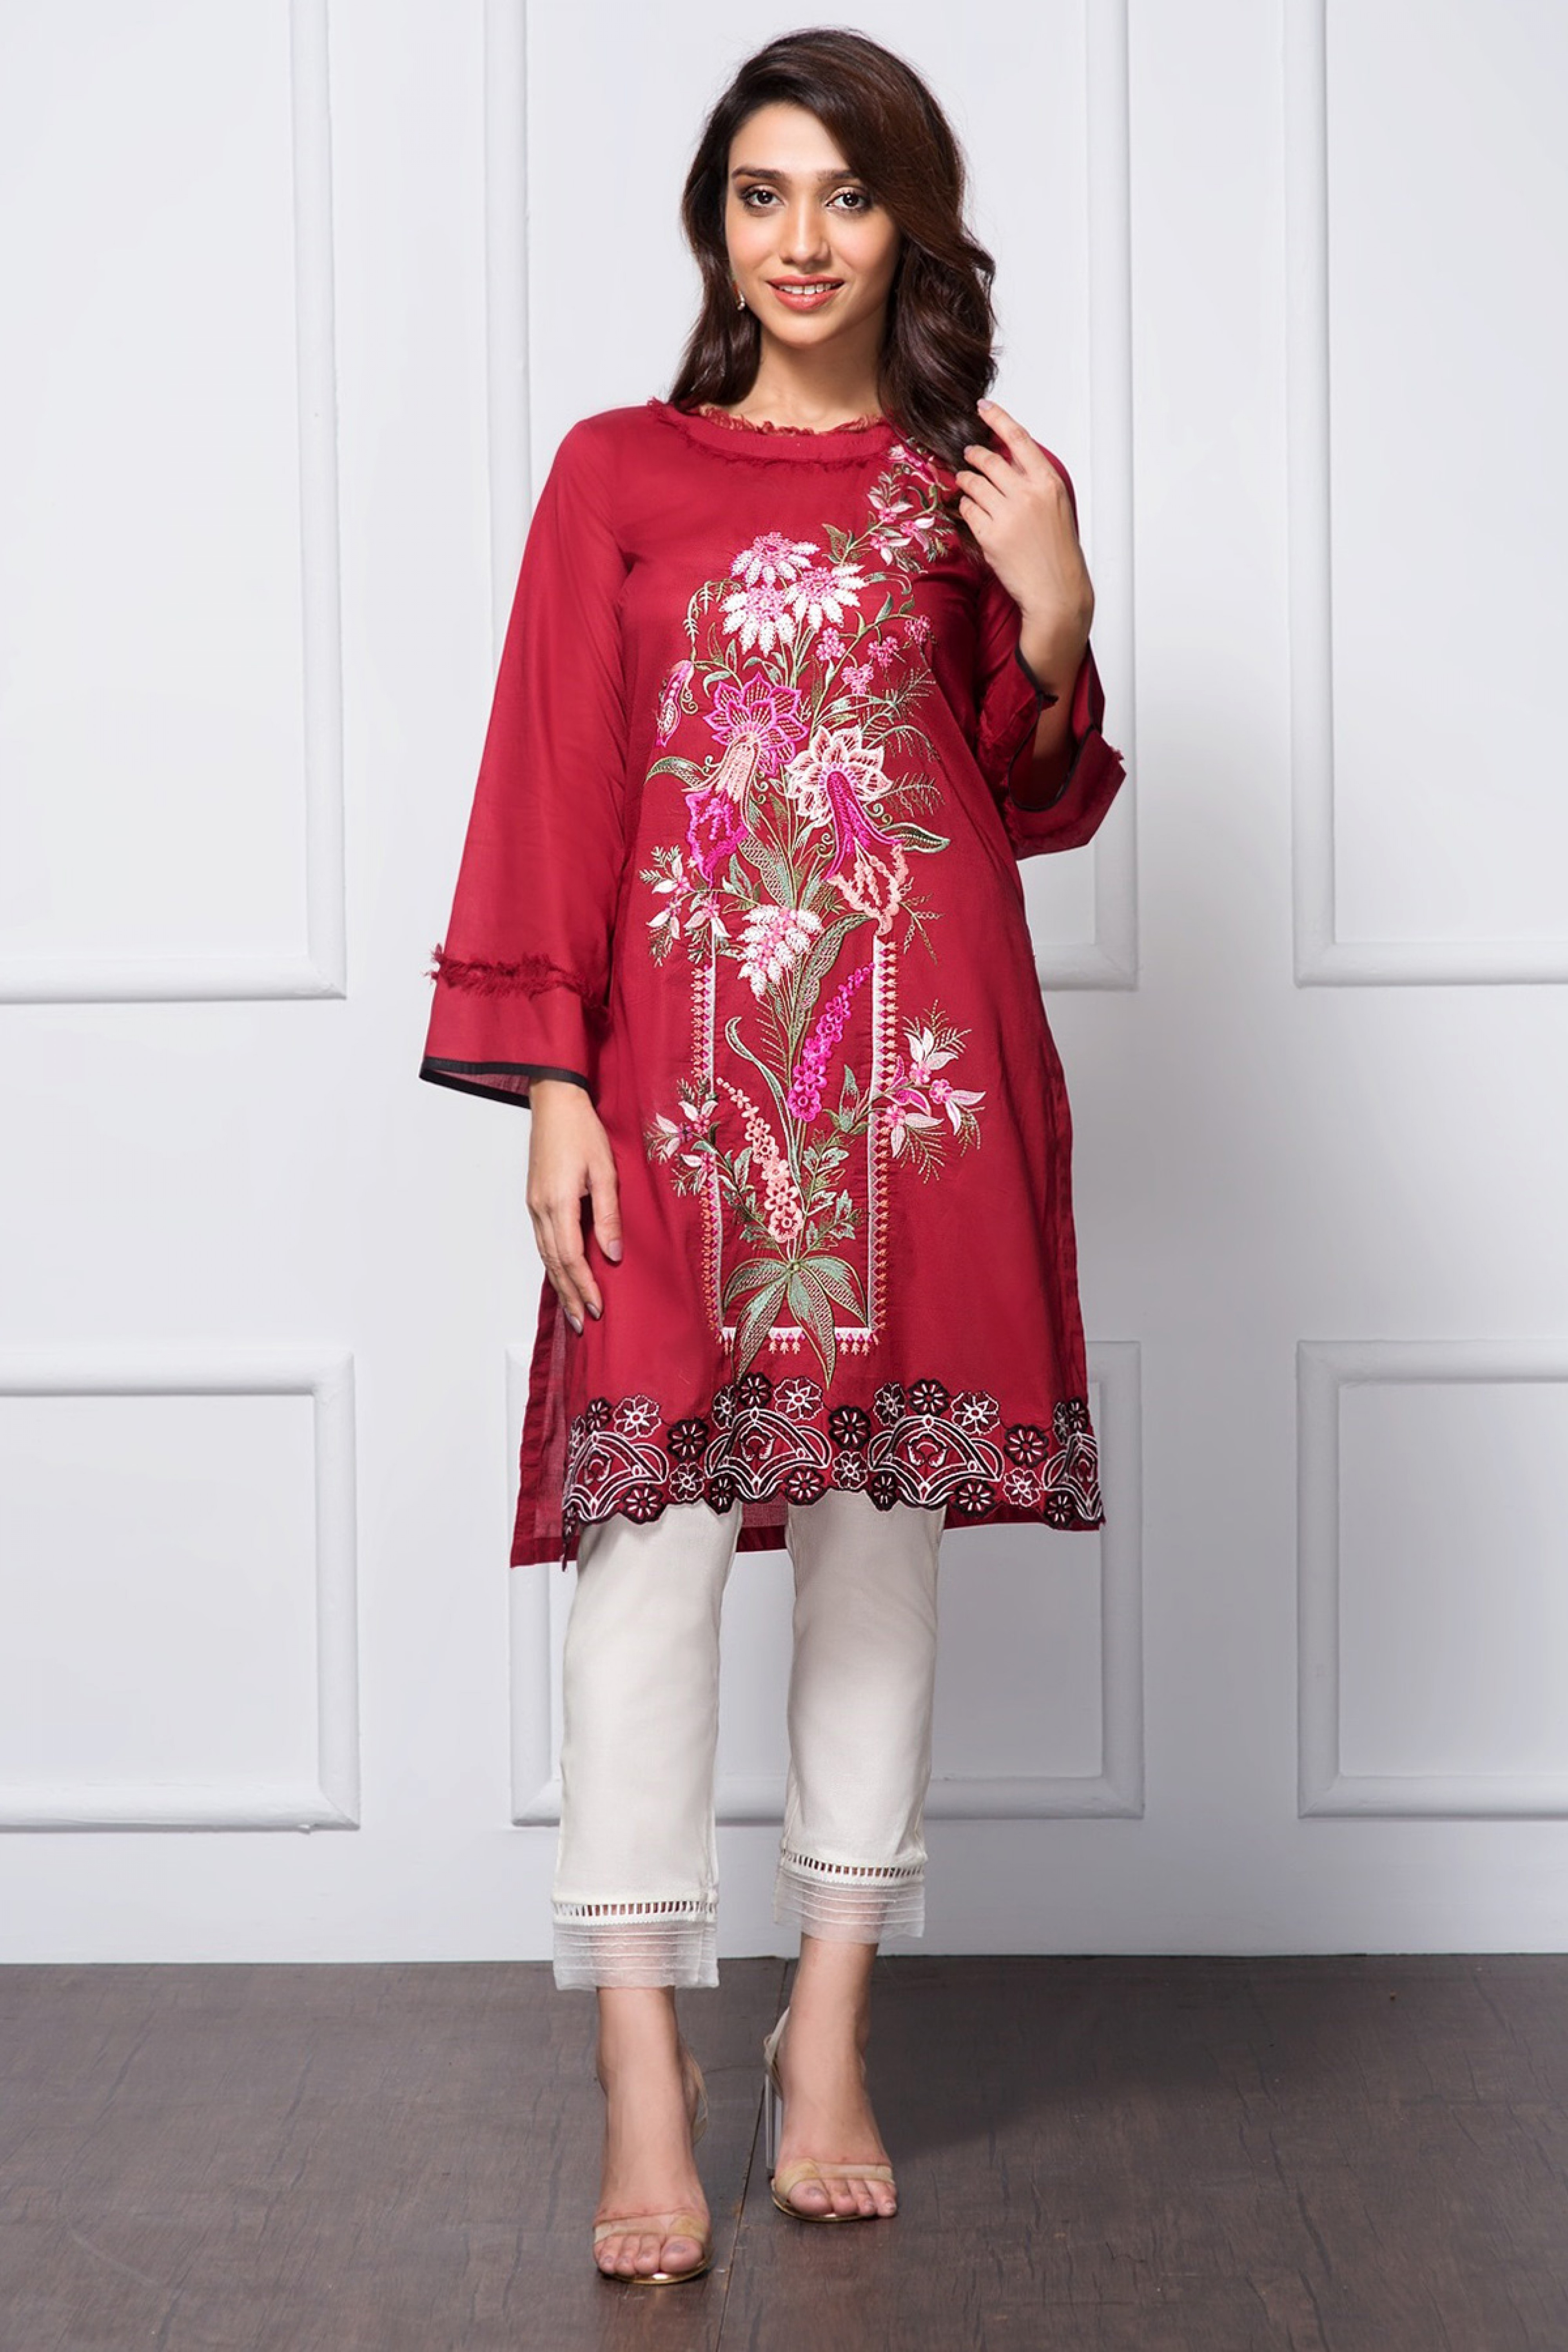 RED CHERRY(Embroidered Shirt)